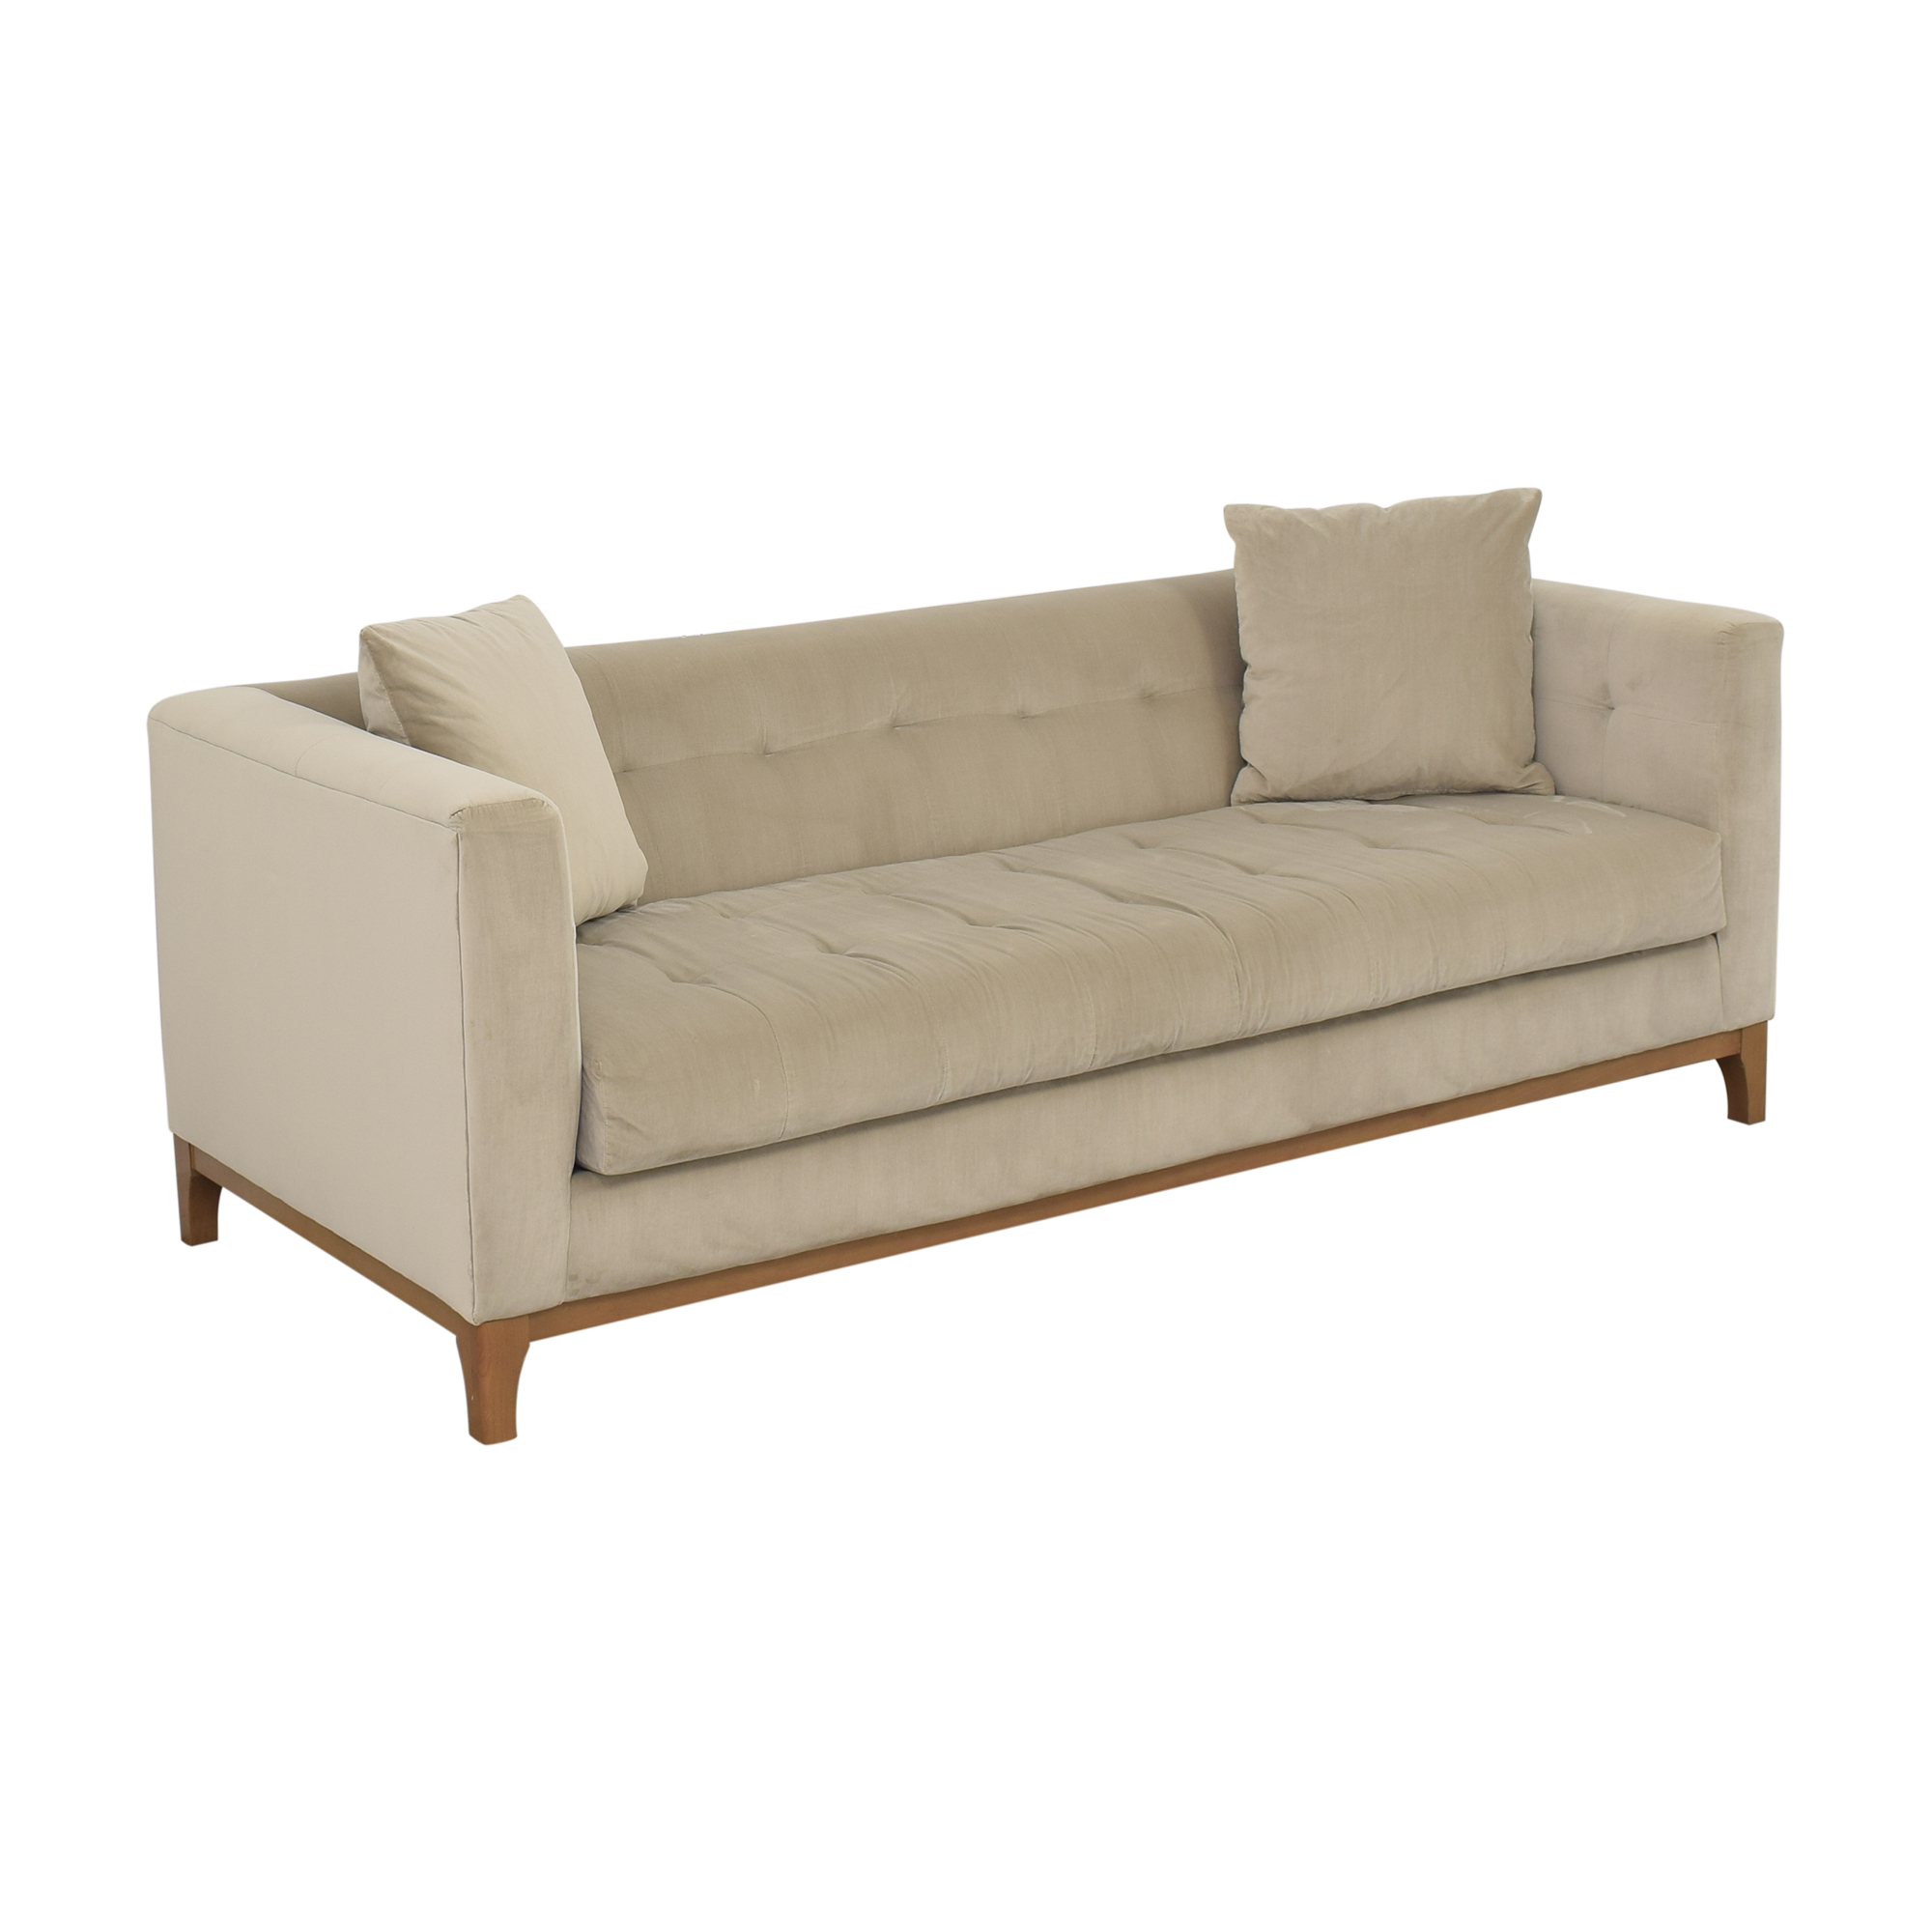 Macy's Macy's Martha Stewart Collection Brookline Sofa second hand